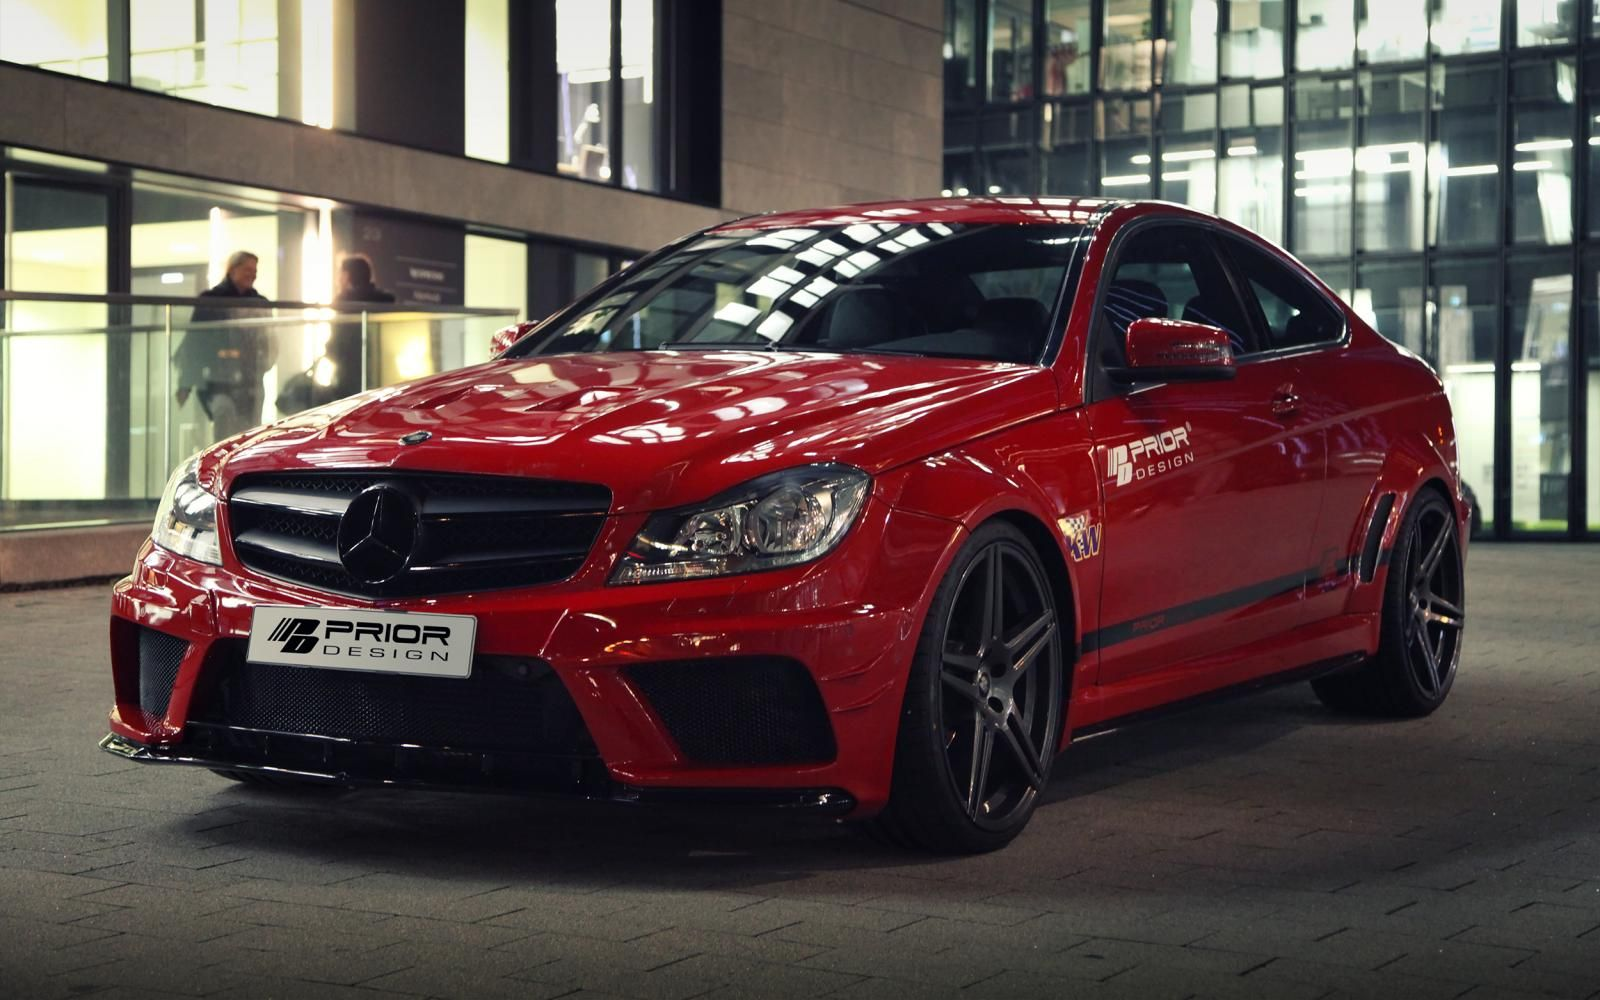 Mercedes Benz C Class Coupe Gets Prior Design Widebody Kit